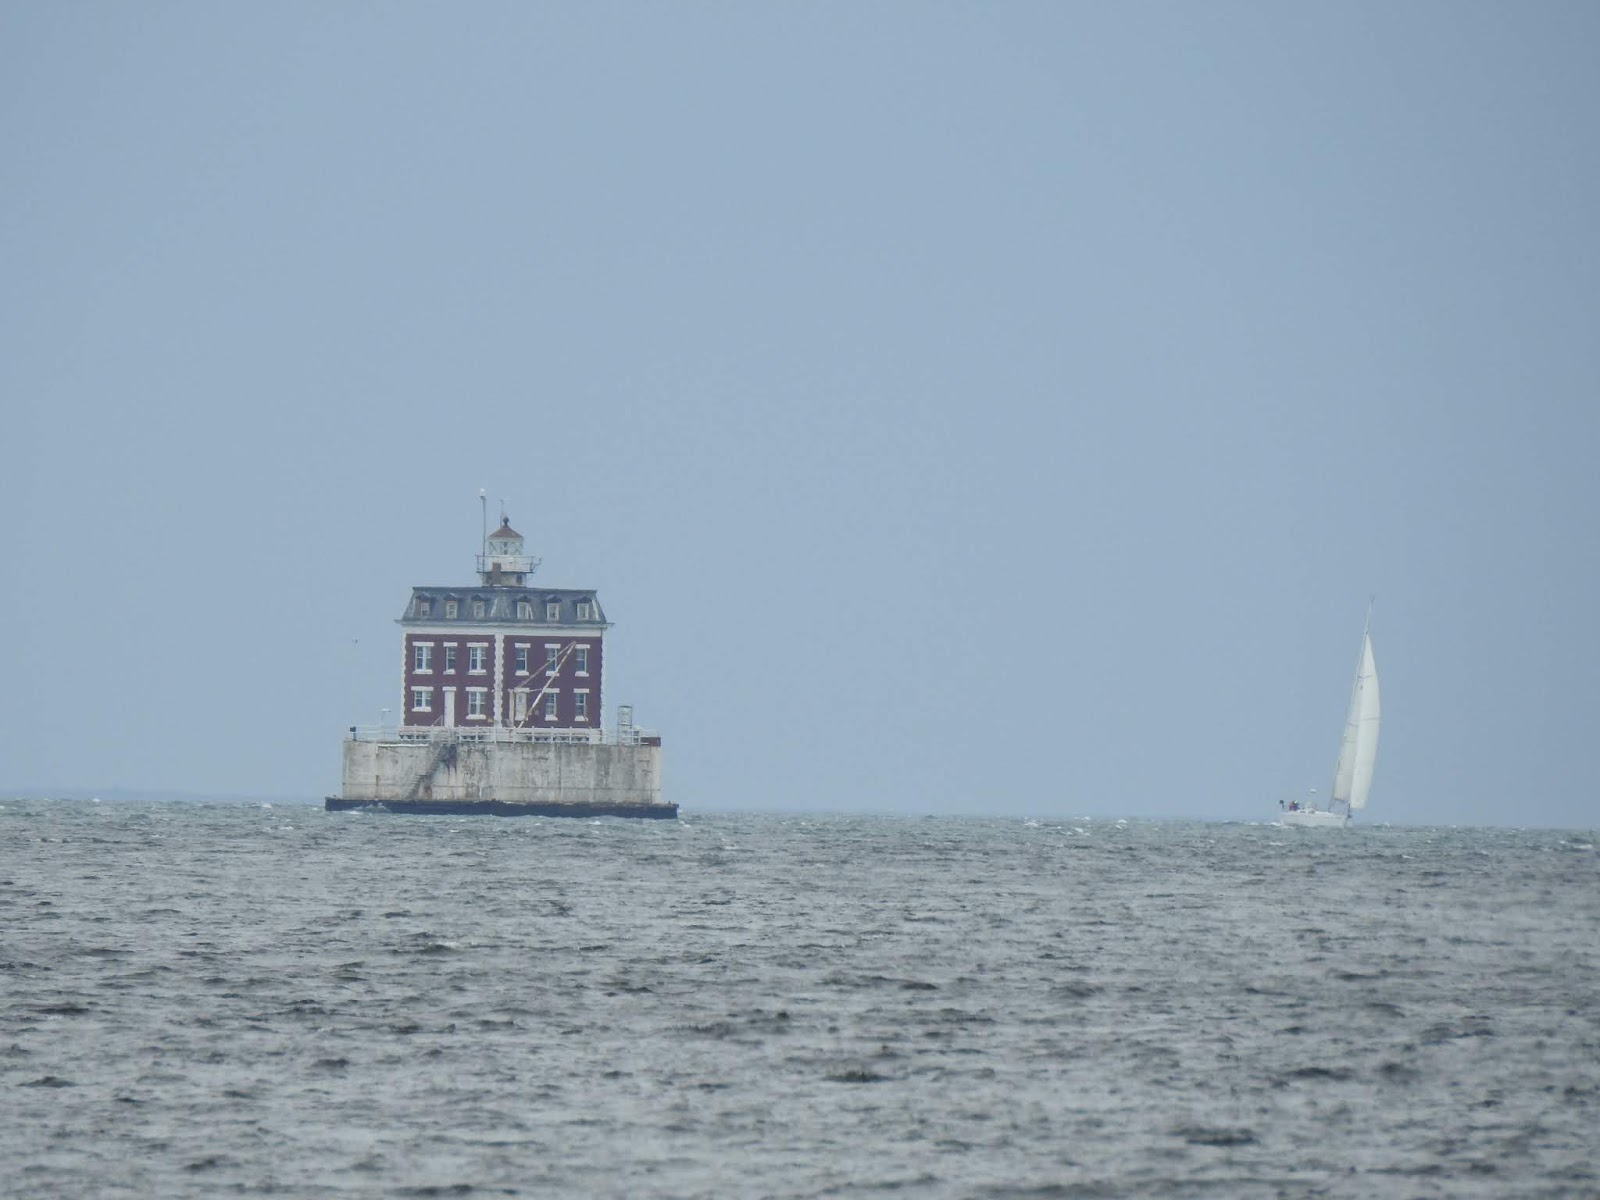 New London Ledge Light House